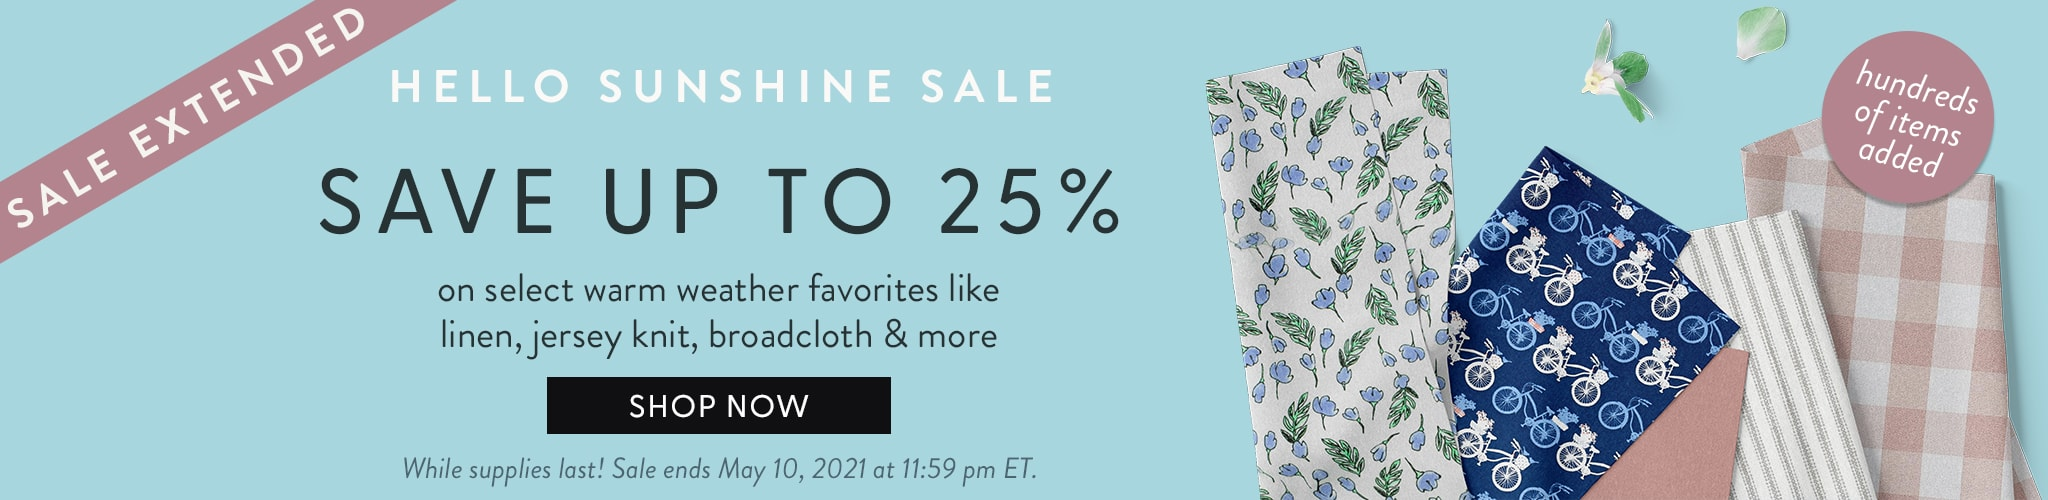 Sale Extended - Hello Sunshine Sale Save up to 25% on select warm weather favorites like linen, jersey knit, broadcloth, and more.